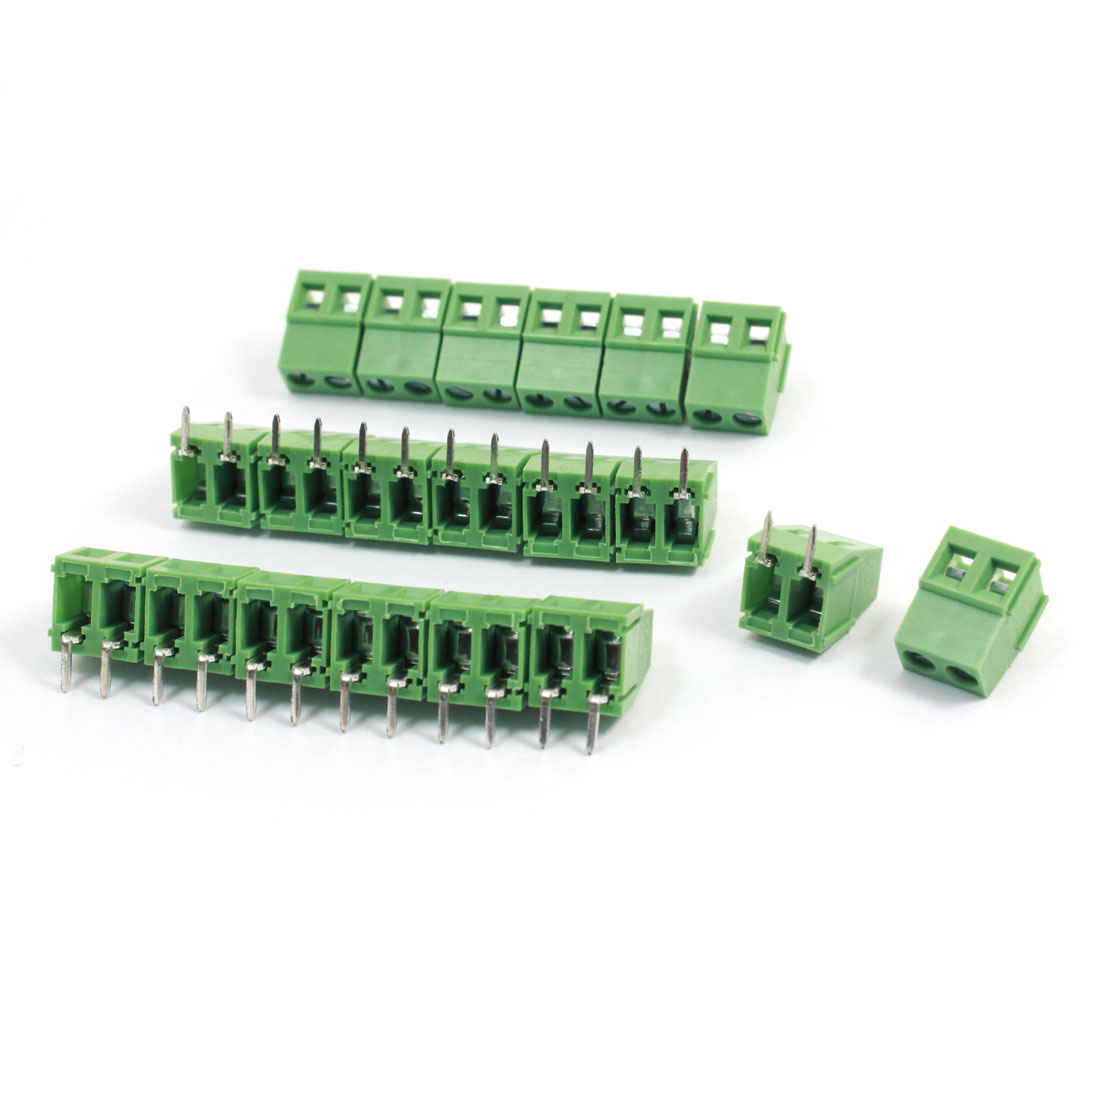 20pcs KF128-2P 5mm Pitch AC300V 10A Terminal Blocks Connectors Green